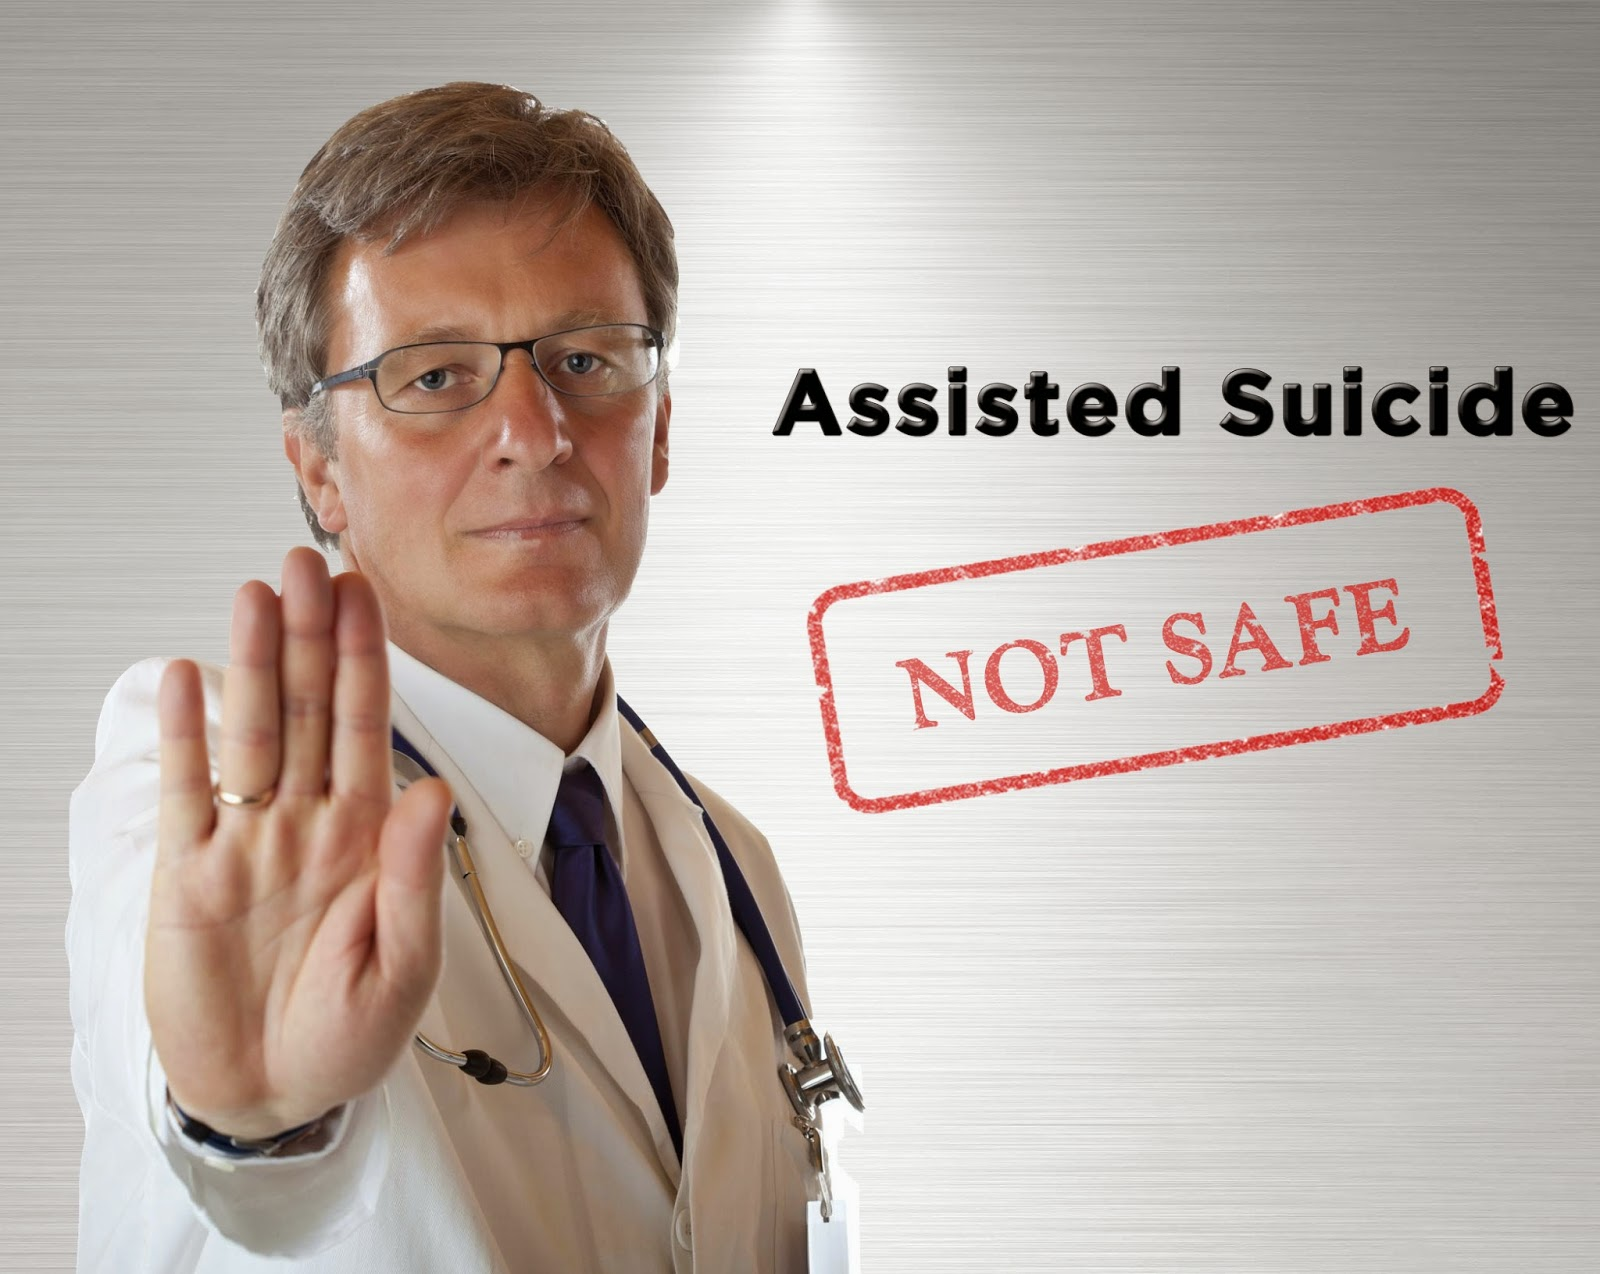 What are positive things about Assisted Suicide besides easing suffering and pain?